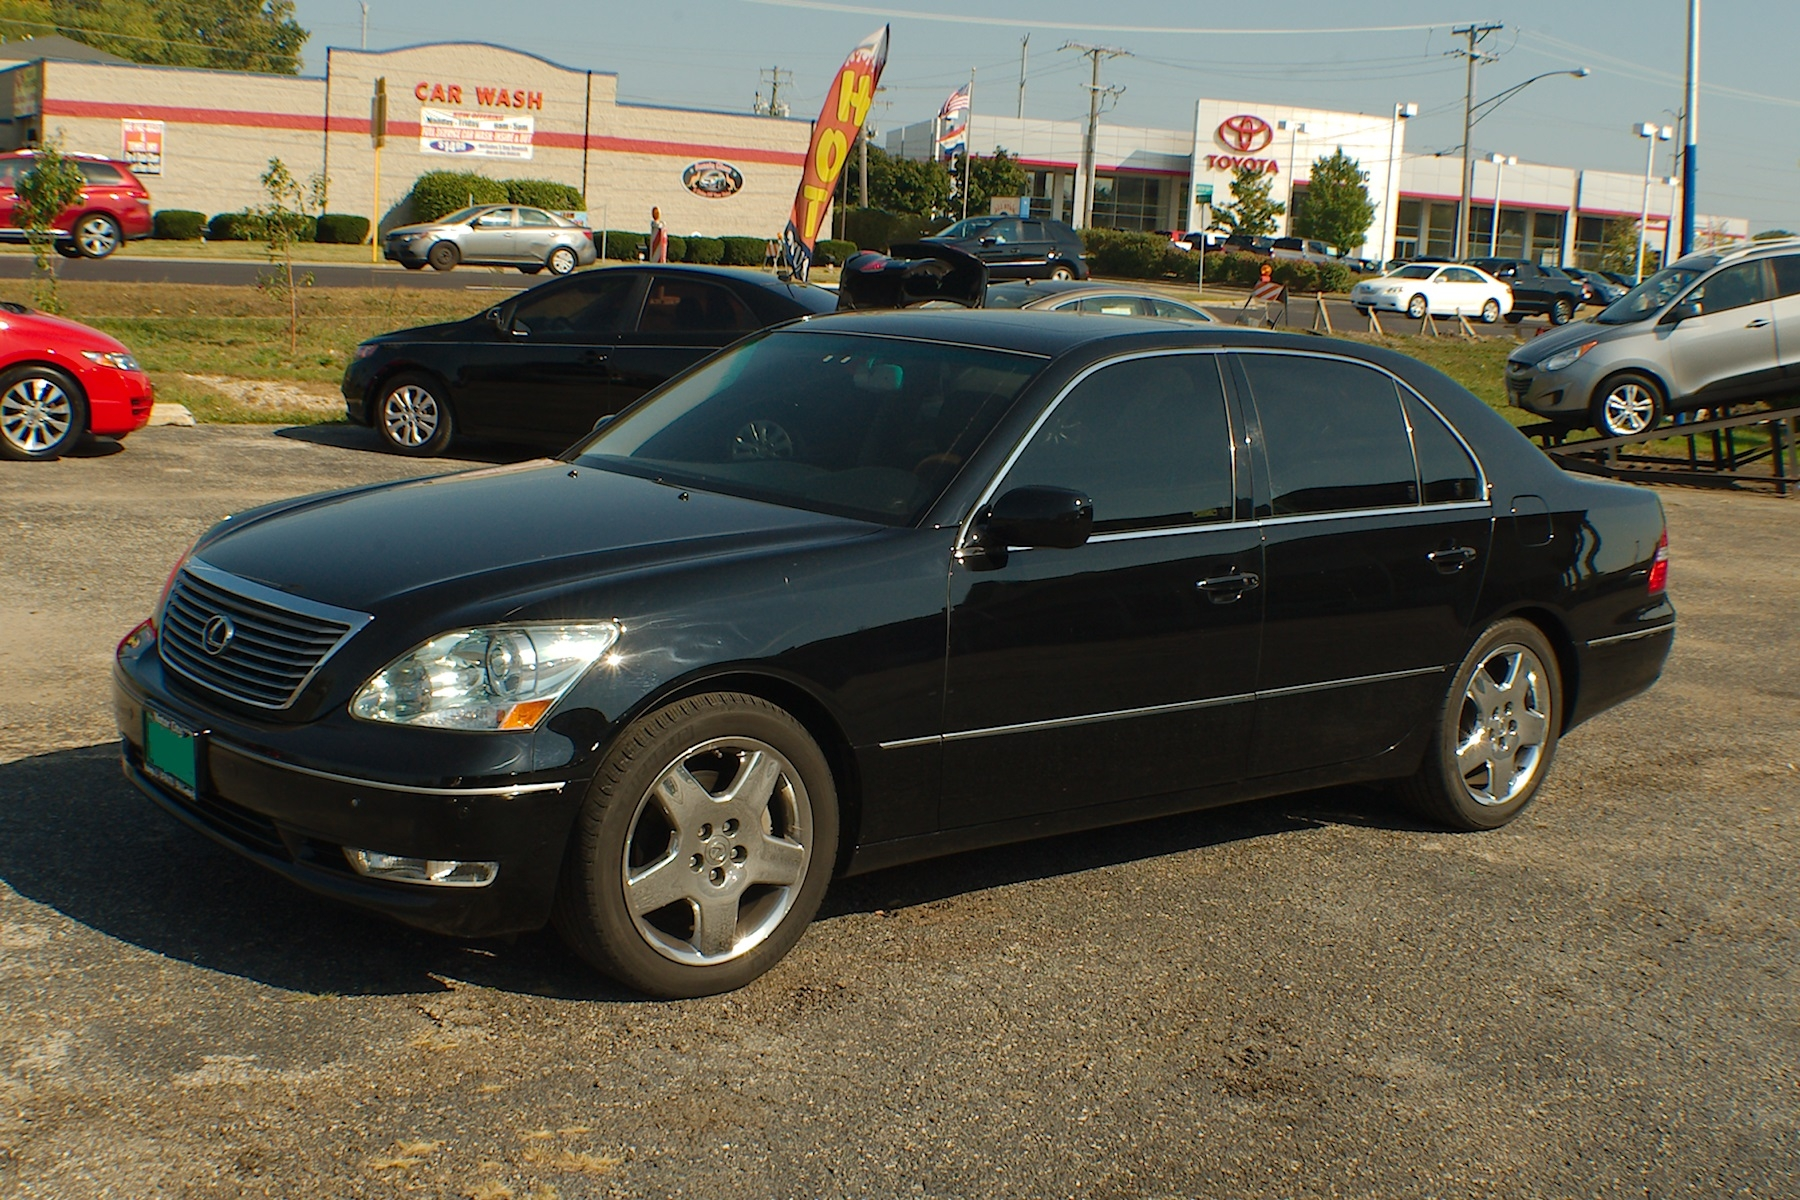 2006 Lexus LS430 Black Sedan Used Car Sale Antioch Zion Waukegan Lake County Illinois